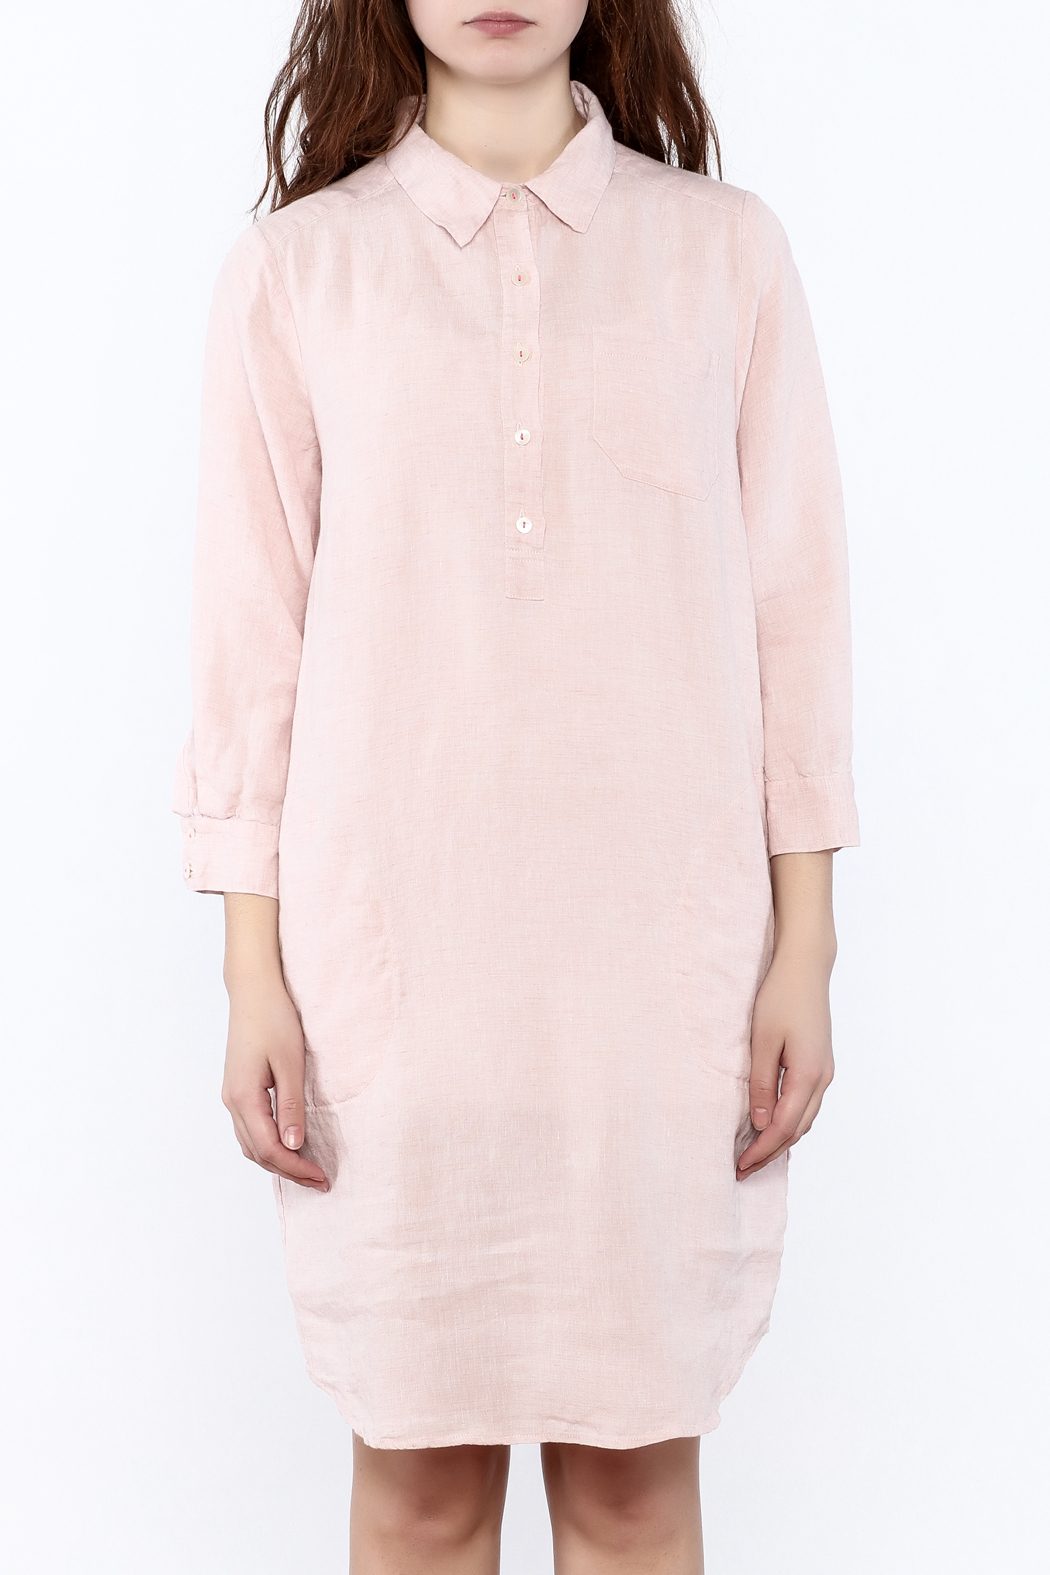 Studio 412 Ballet Pink Linen Dress - Side Cropped Image